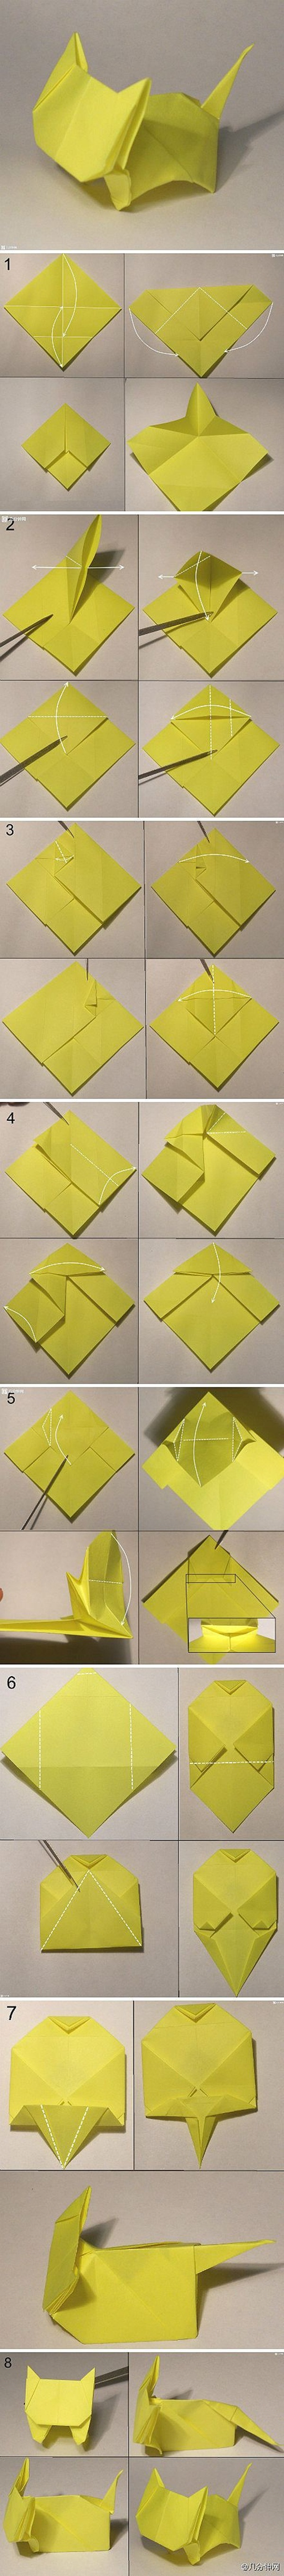 easy-origami-for-kids11